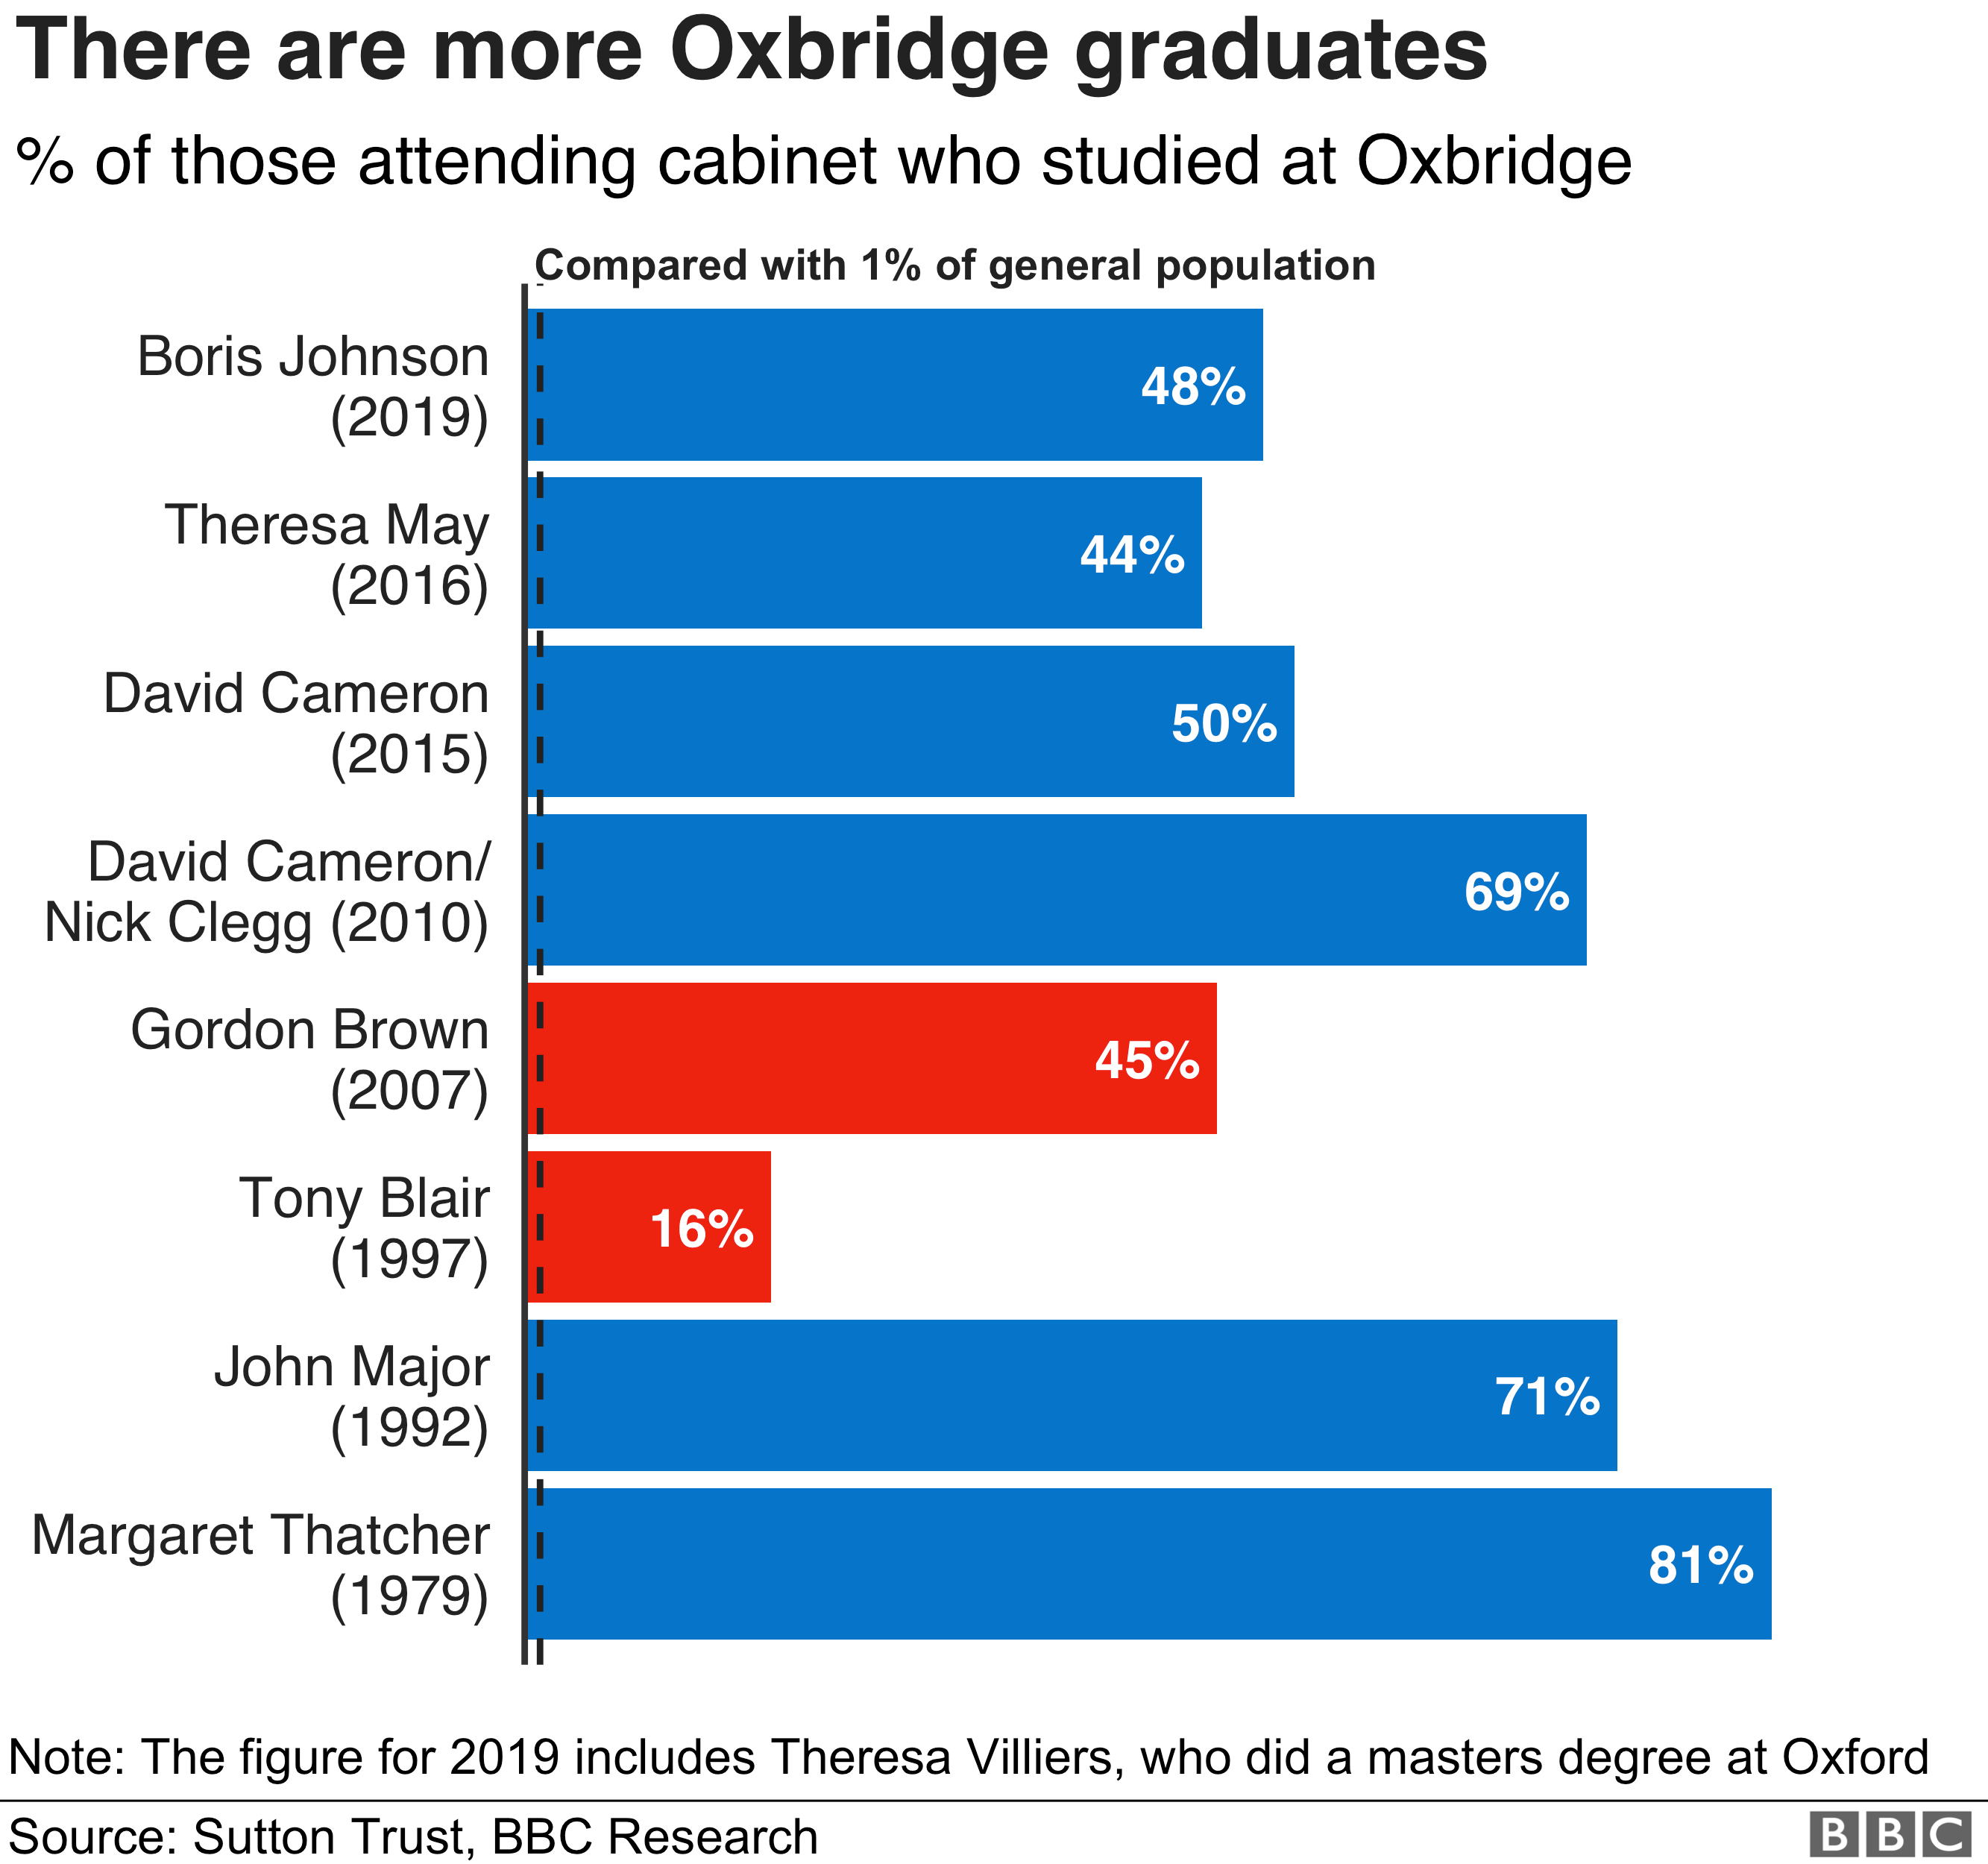 Chart showing the % of Oxbridge-educated members of cabinet from Thatcher to Johnson